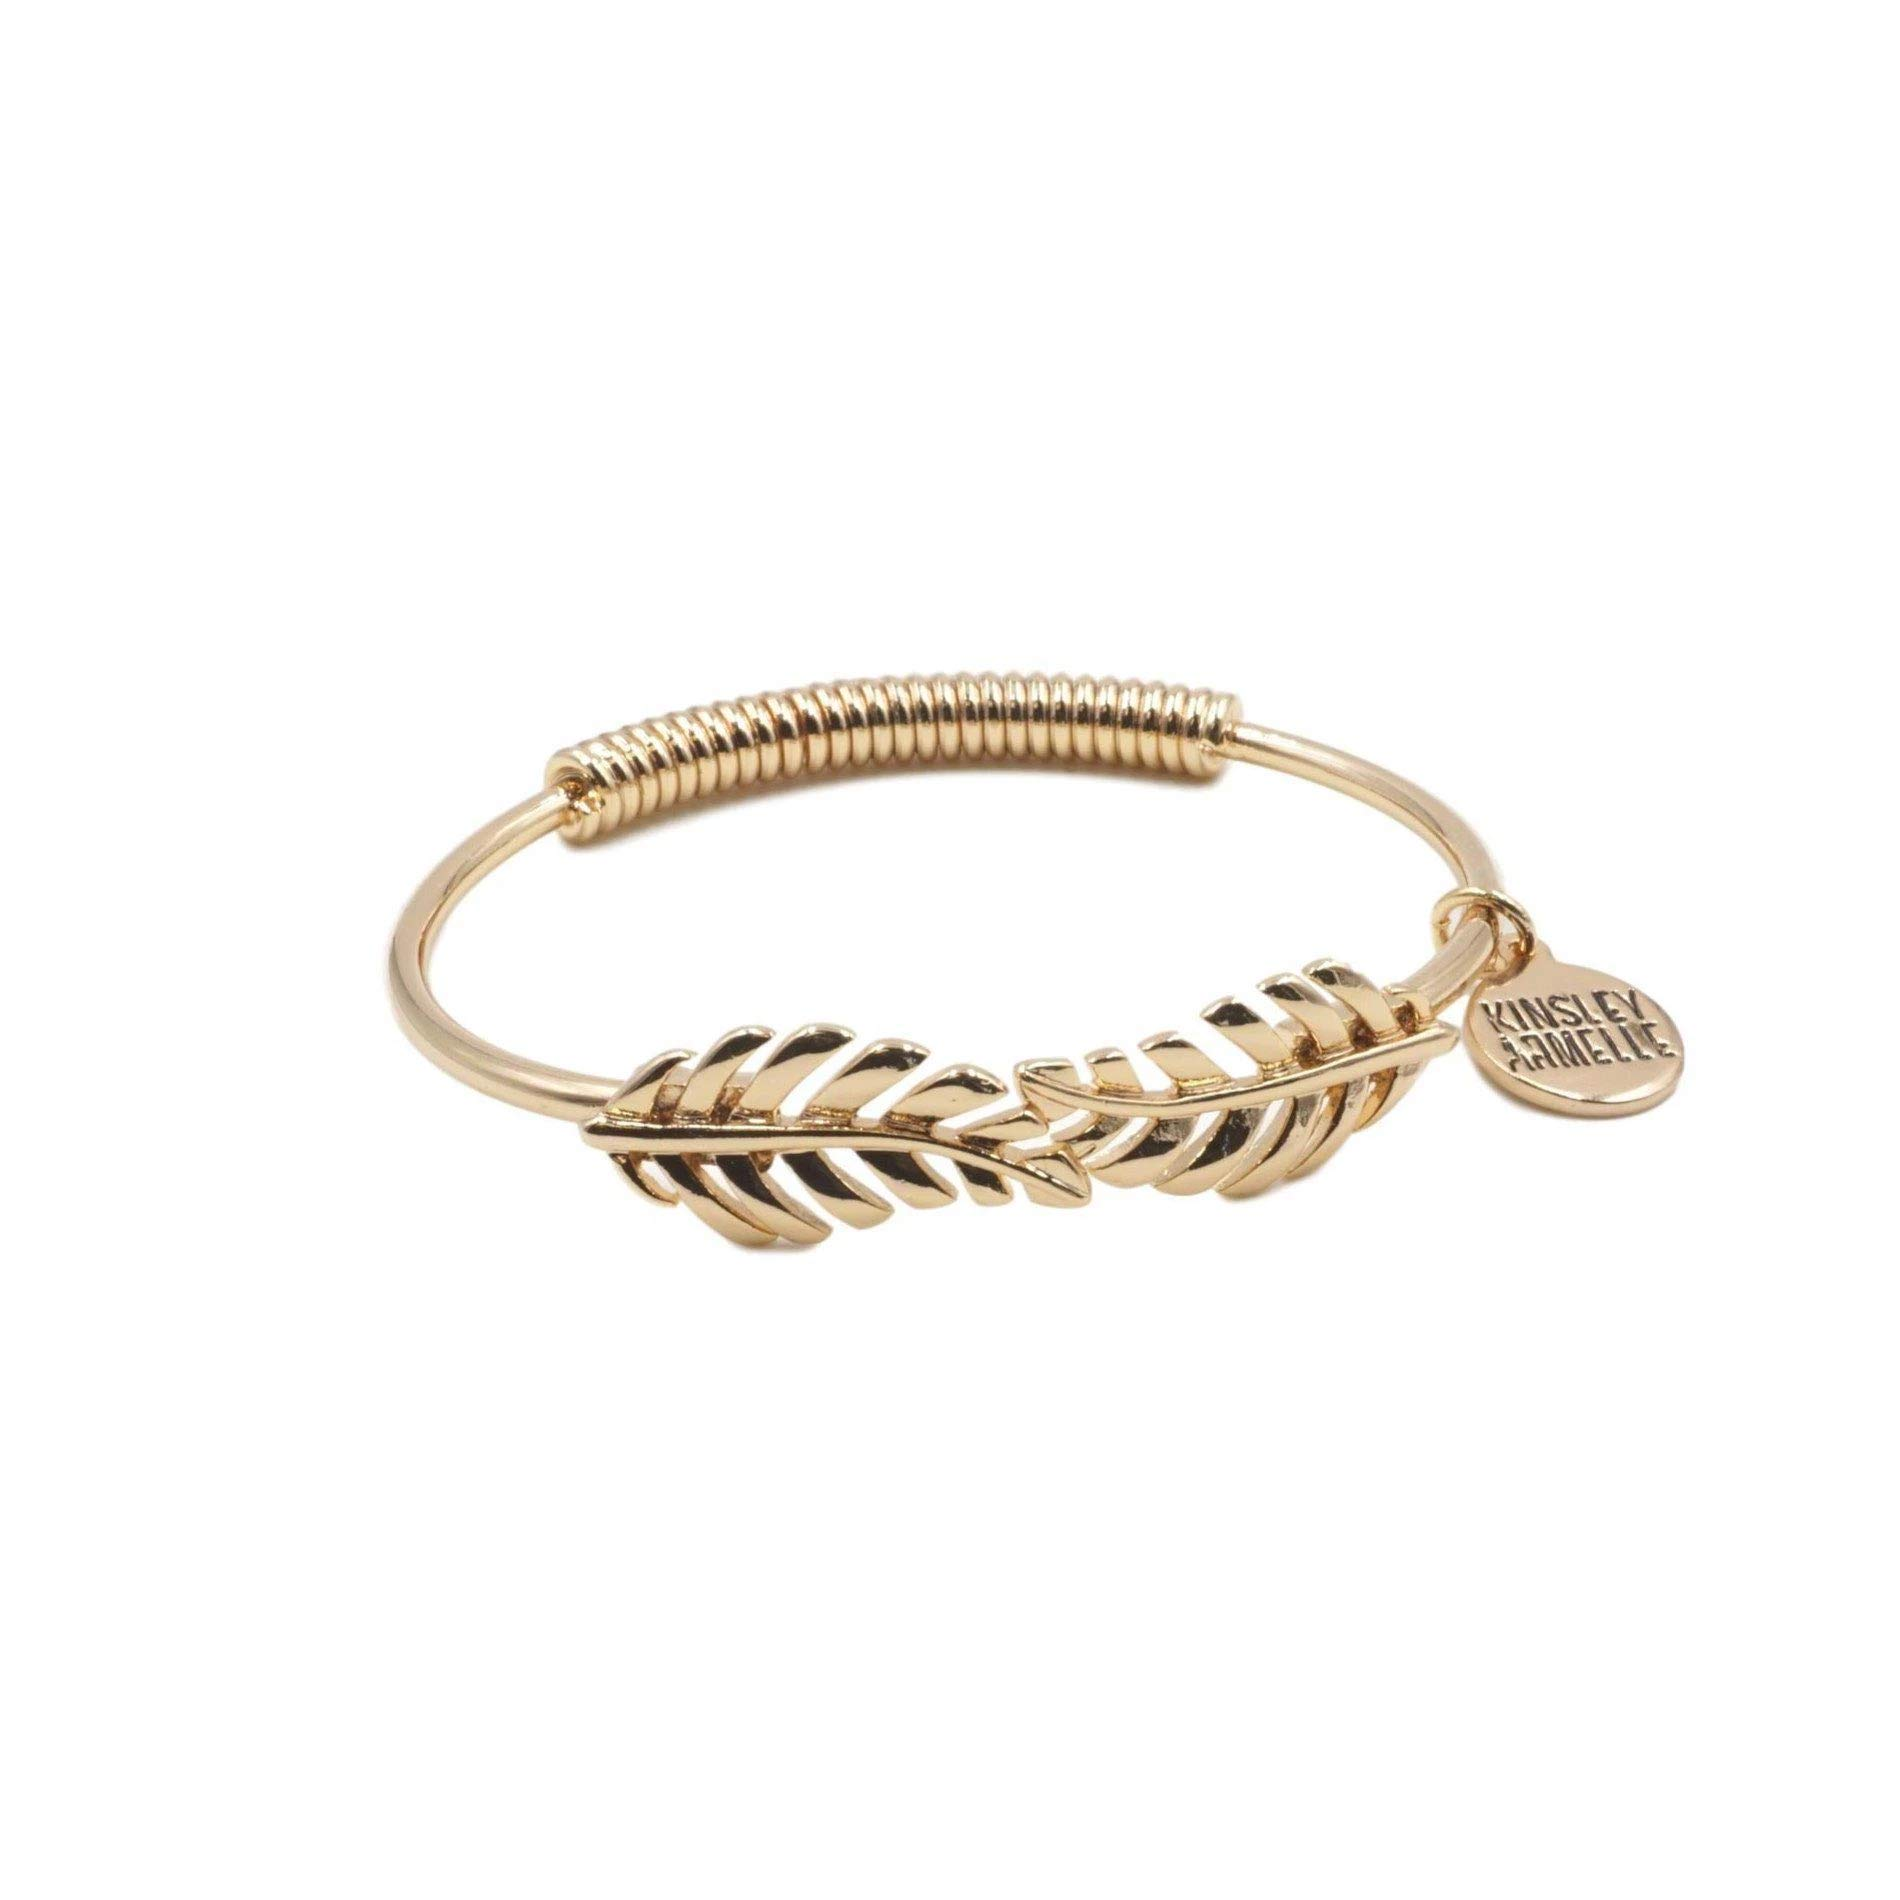 Kinsley Armelle Goddess Collection - Laurel Leaf Bracelet by Kinsley Armelle